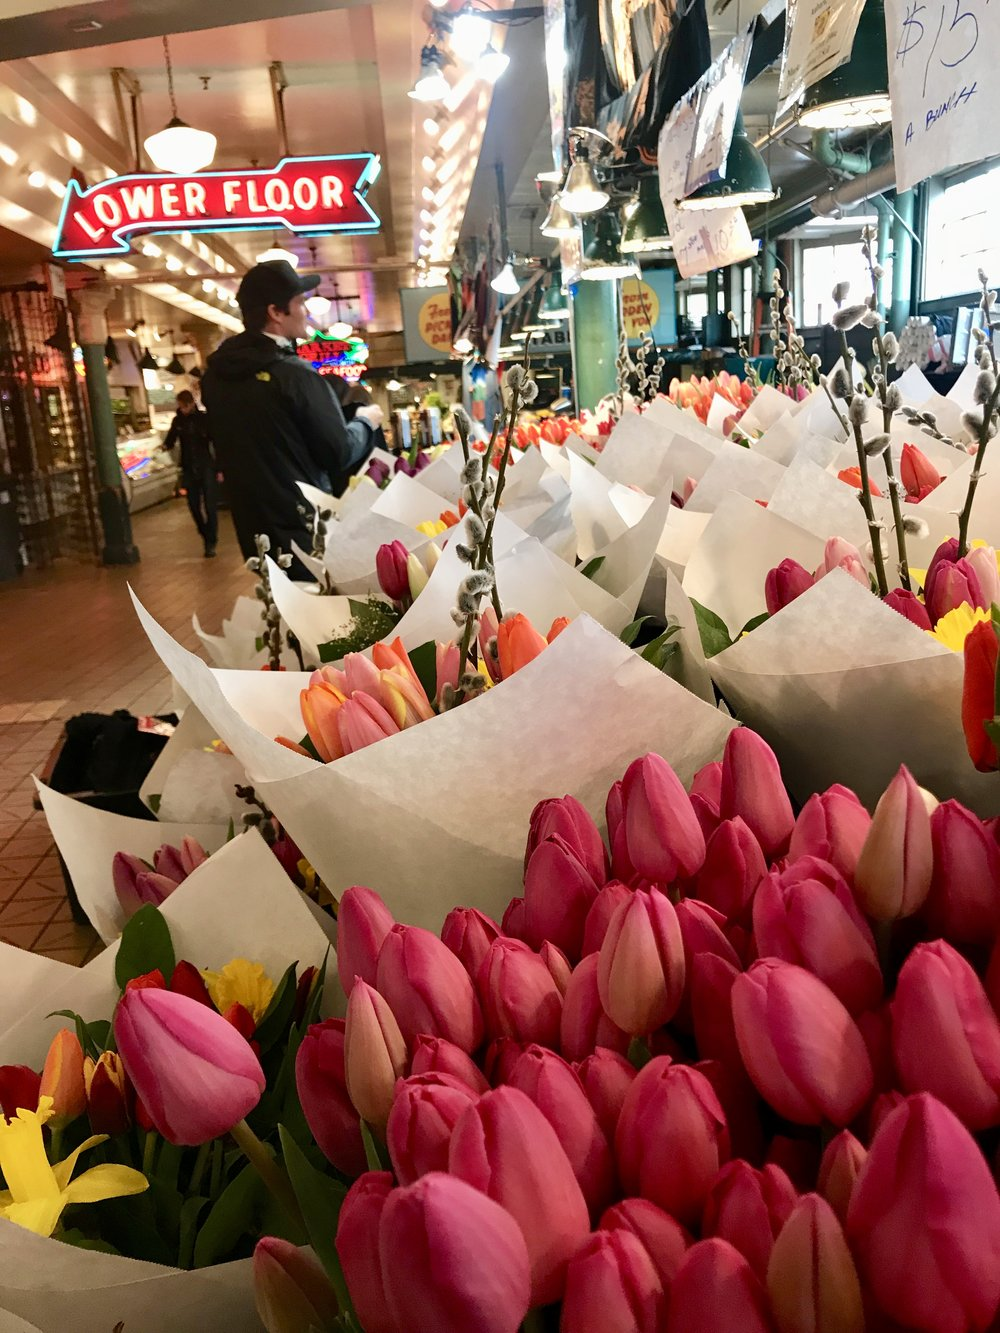 Seattle, the city of love. - I have never seen so many people excited to buy bouquets of flowers for loved ones. Everywhere you turn and every market that you enter has a wide assortment of fresh flowers! This is unique, for me, because I do not see many people that do little things to make others happy here in Sacramento.When I do things for others, they either end up confused as to why someone is so nice and thoughtful, or filled with guilt enough to make them want to buy me something in return.Can we bring back thoughtfulness, or should I just pack up my belongings and head to Downtown Seattle now?